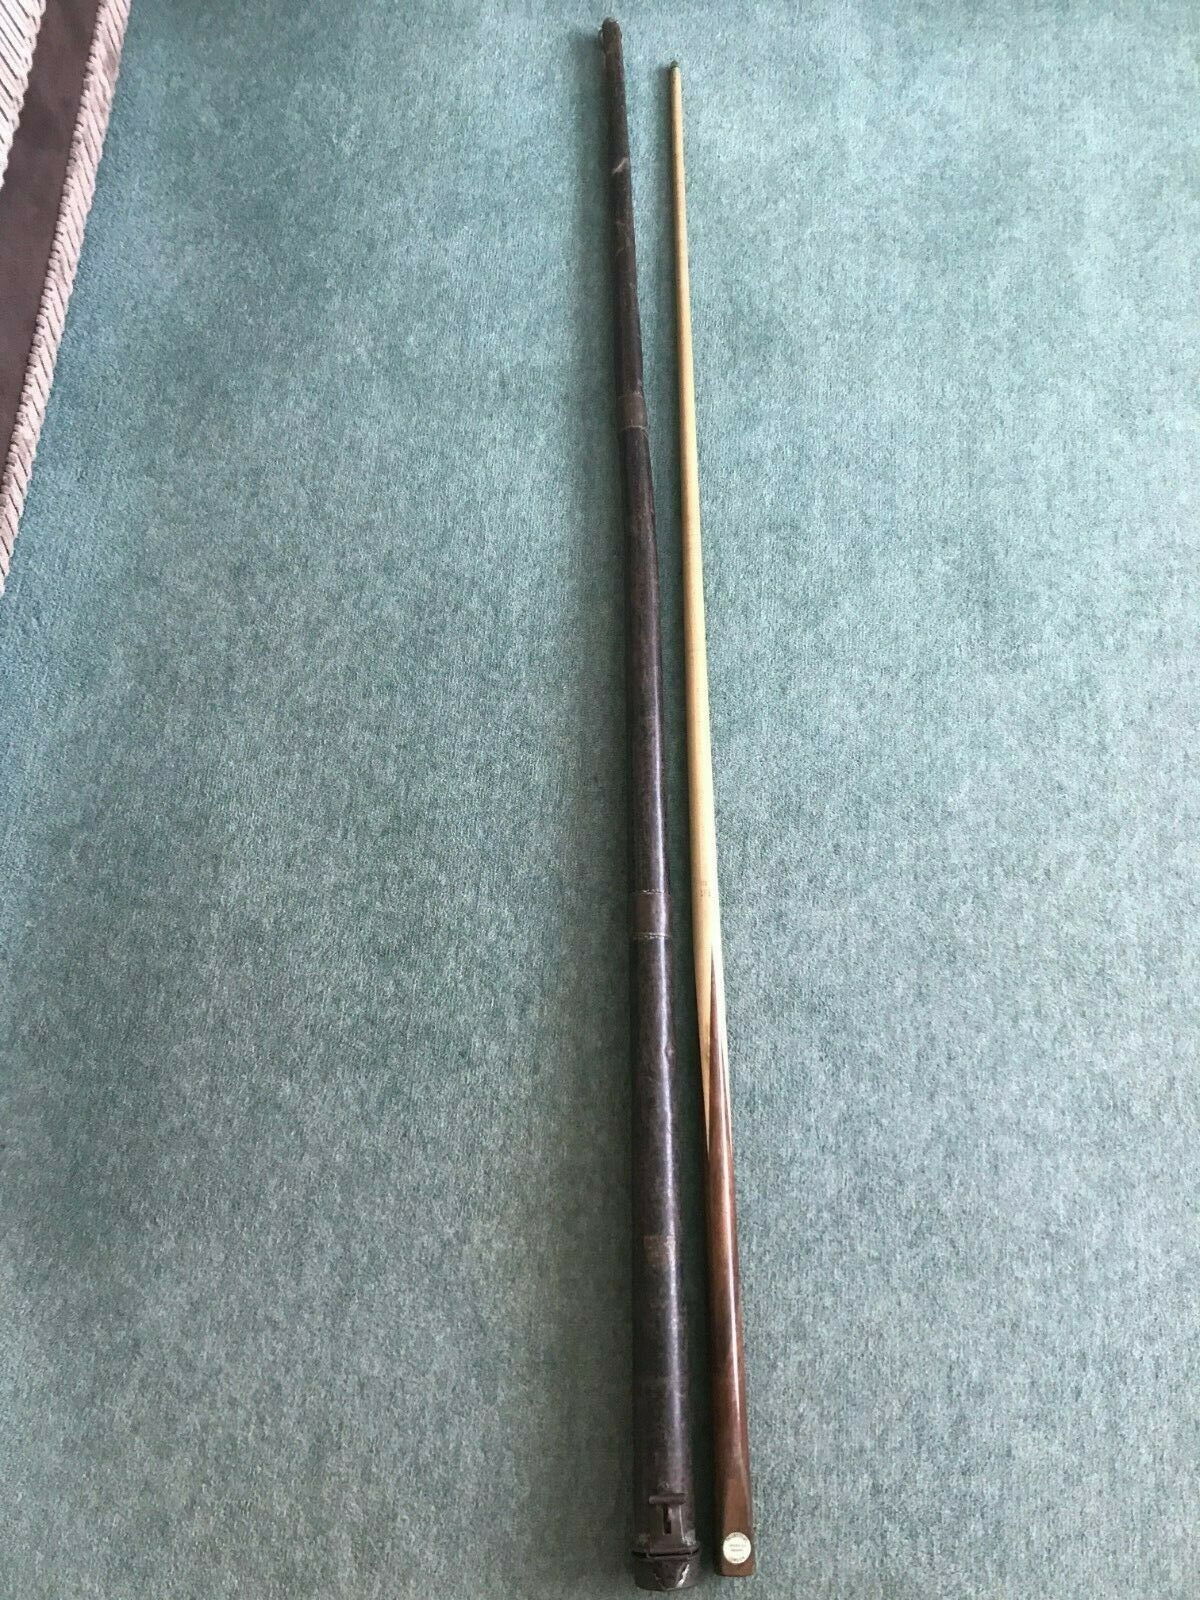 THURSTONS LEICESTER SQUARE LONDON 1 PIECE MAPLE SNOOKER CUE C/W METAL CASE